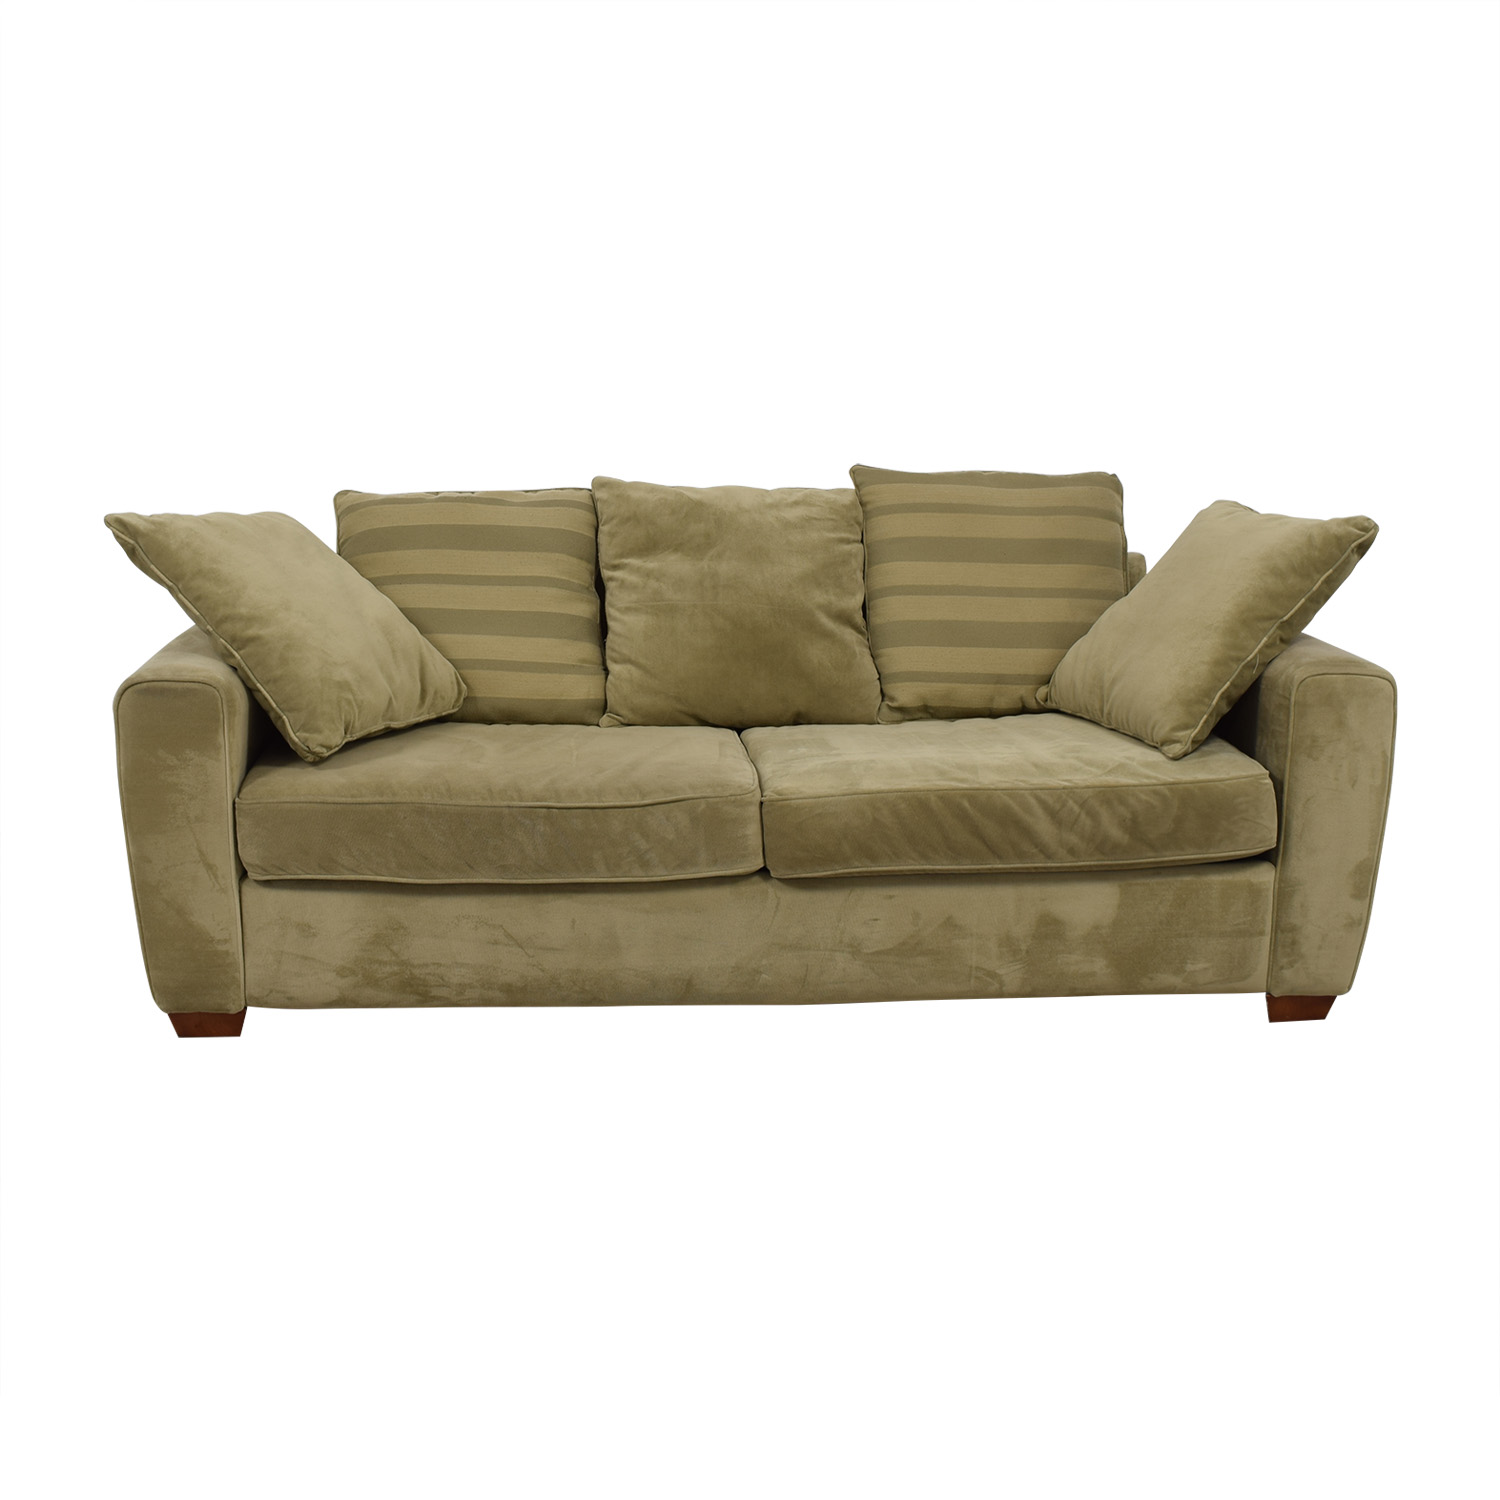 Jennifer Furniture Jennifer Furniture Tan Two-Cushion Sofa nj